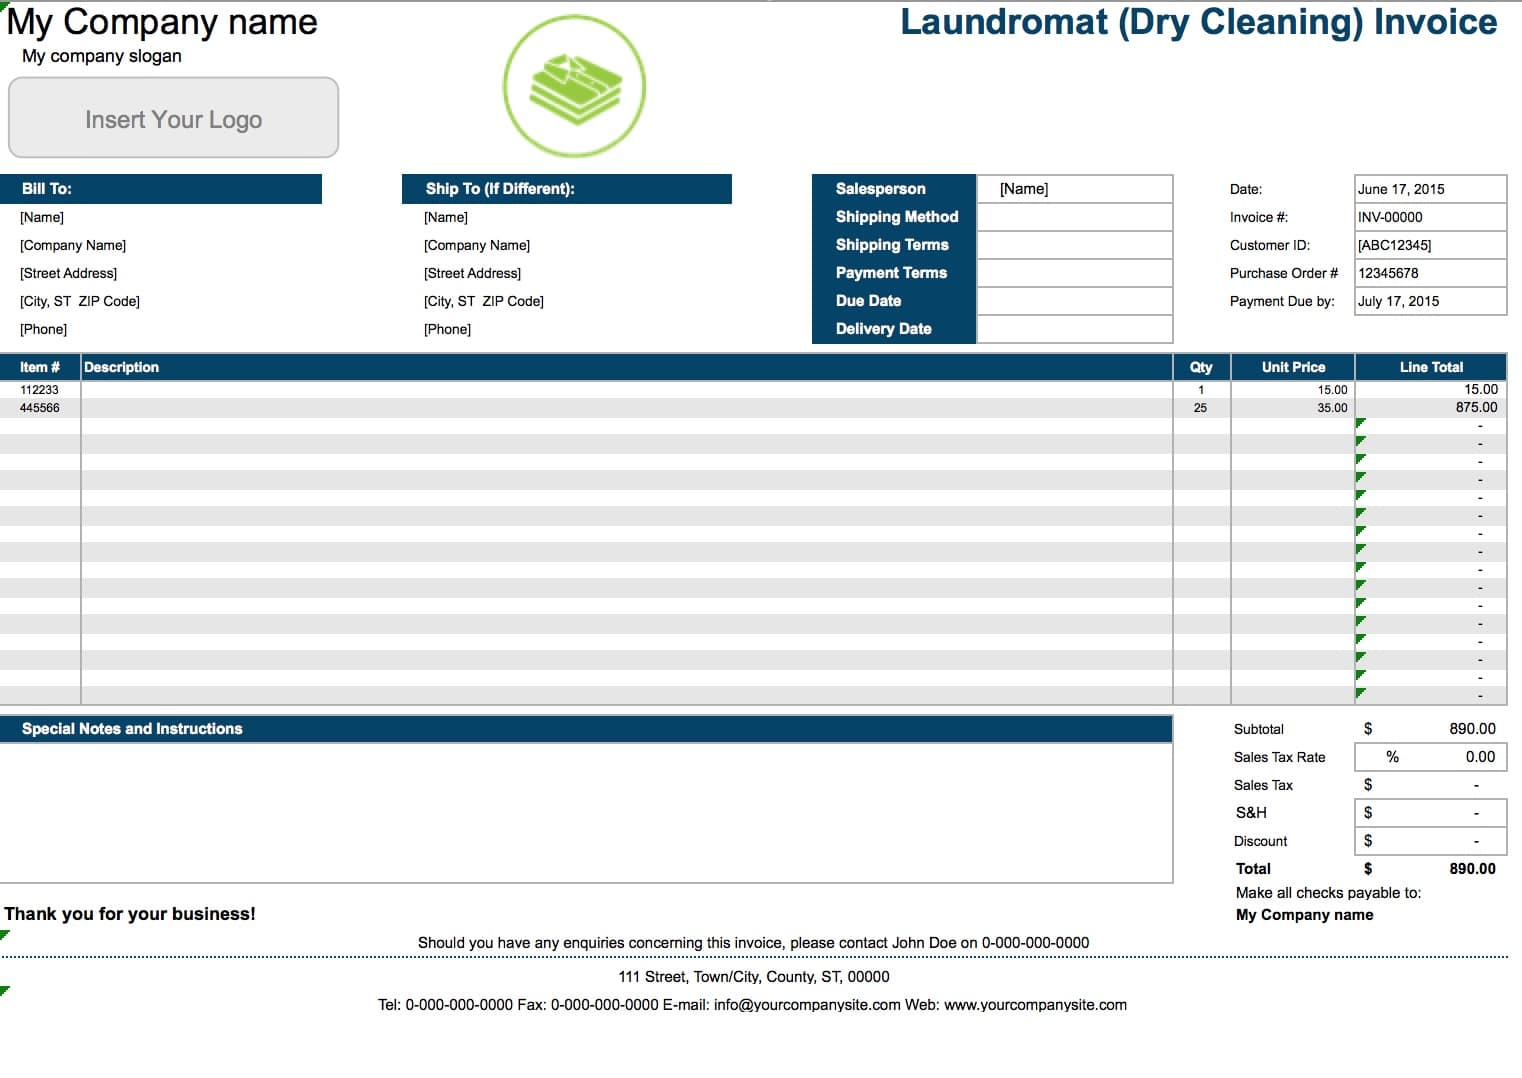 Laundromat (Dry Cleaning)